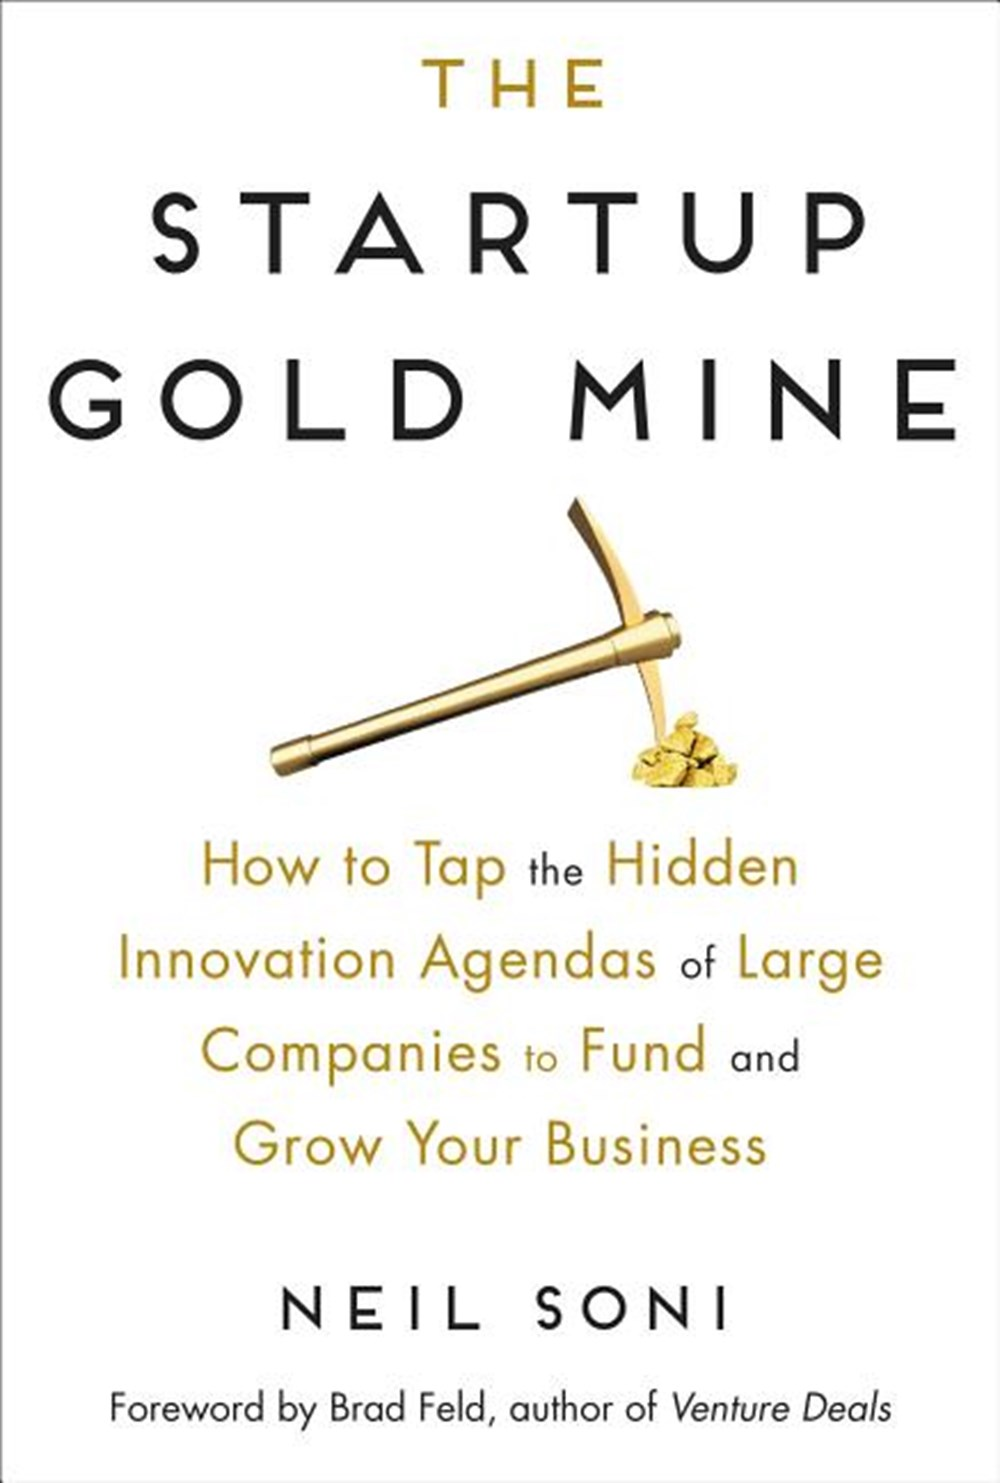 Startup Gold Mine How to Tap the Hidden Innovation Agendas of Large Companies to Fund and Grow Your